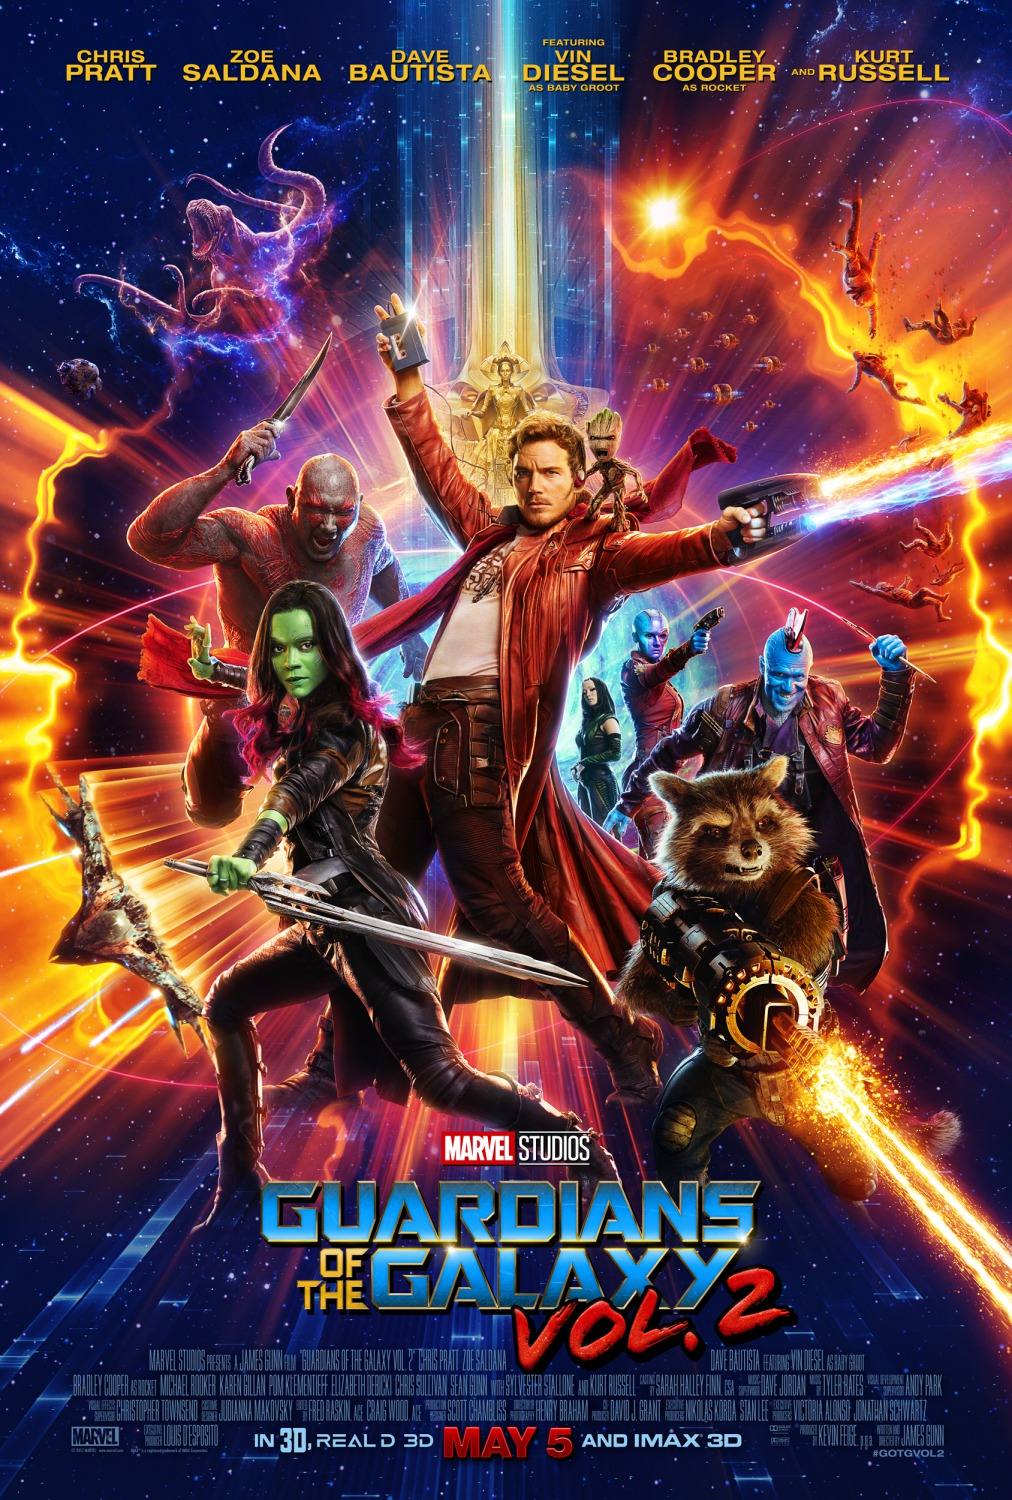 Poster for Guardians of the Galaxy Vol. 2 featuring Gamora, Star Lord, Drax, Rocket Racoon, Baby Groot, Yondu, and Nebula.